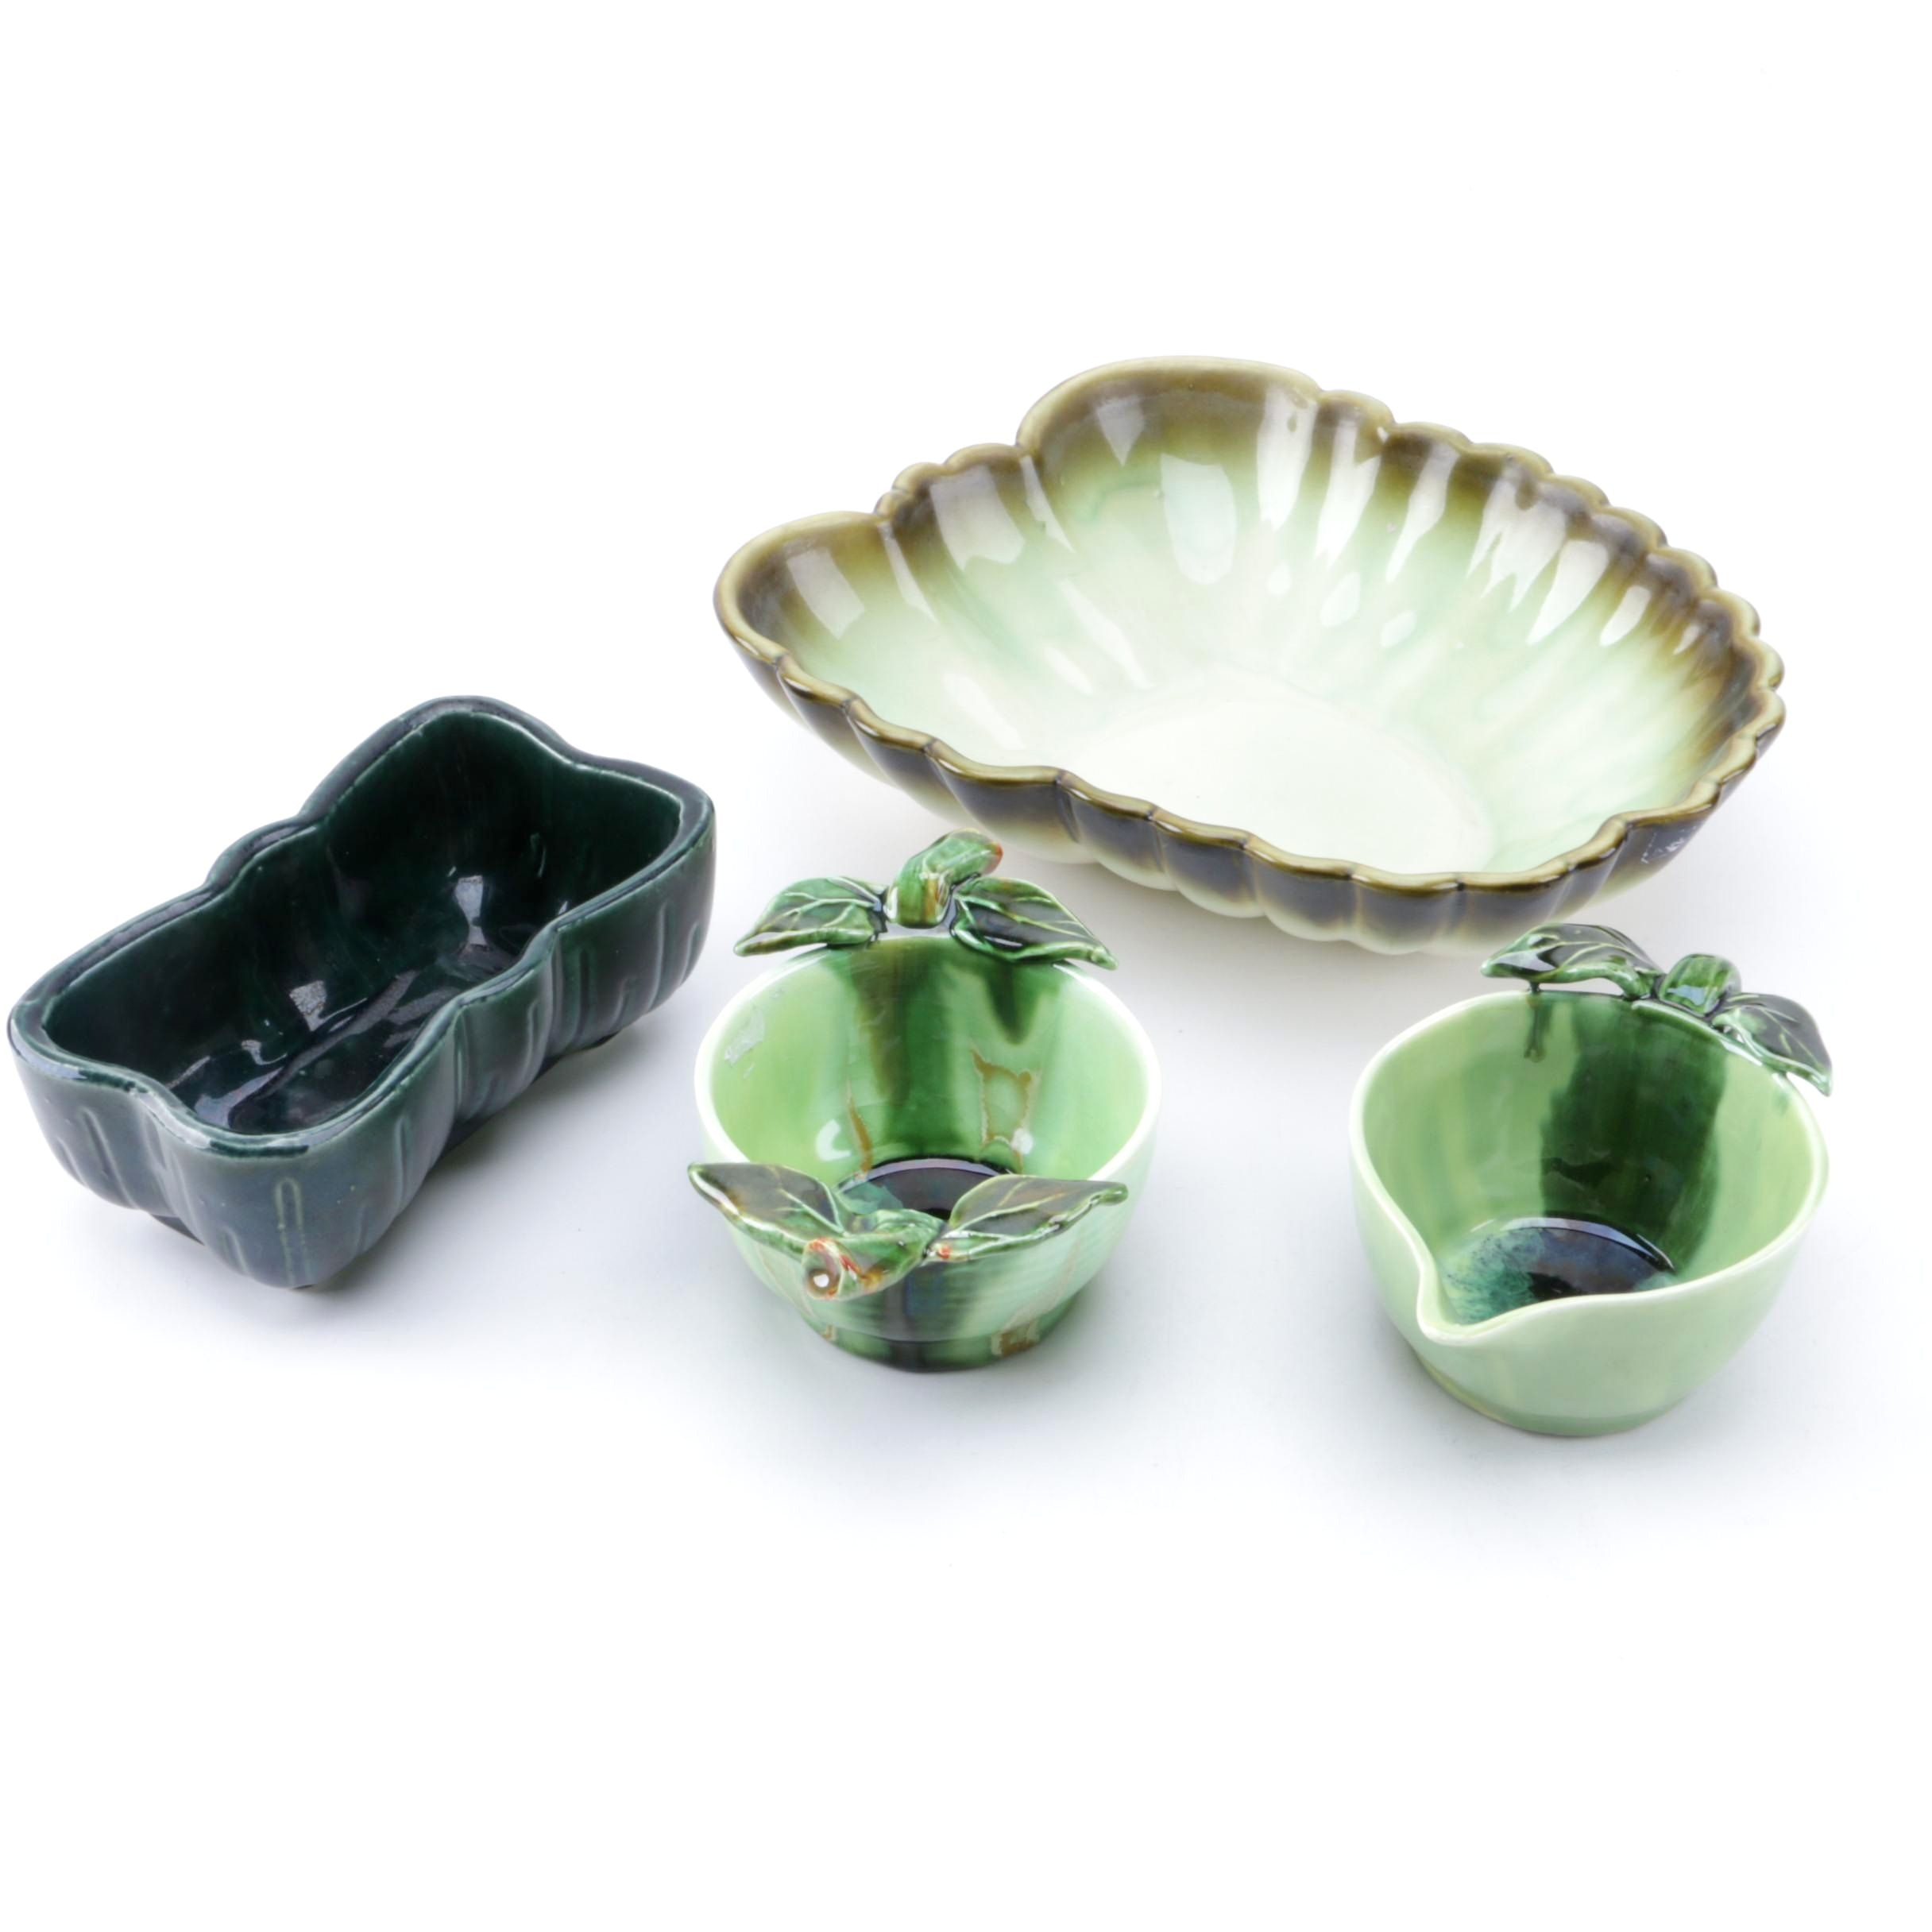 Melrose Pottery and Hall Pottery Planters with Ceramic Tableware